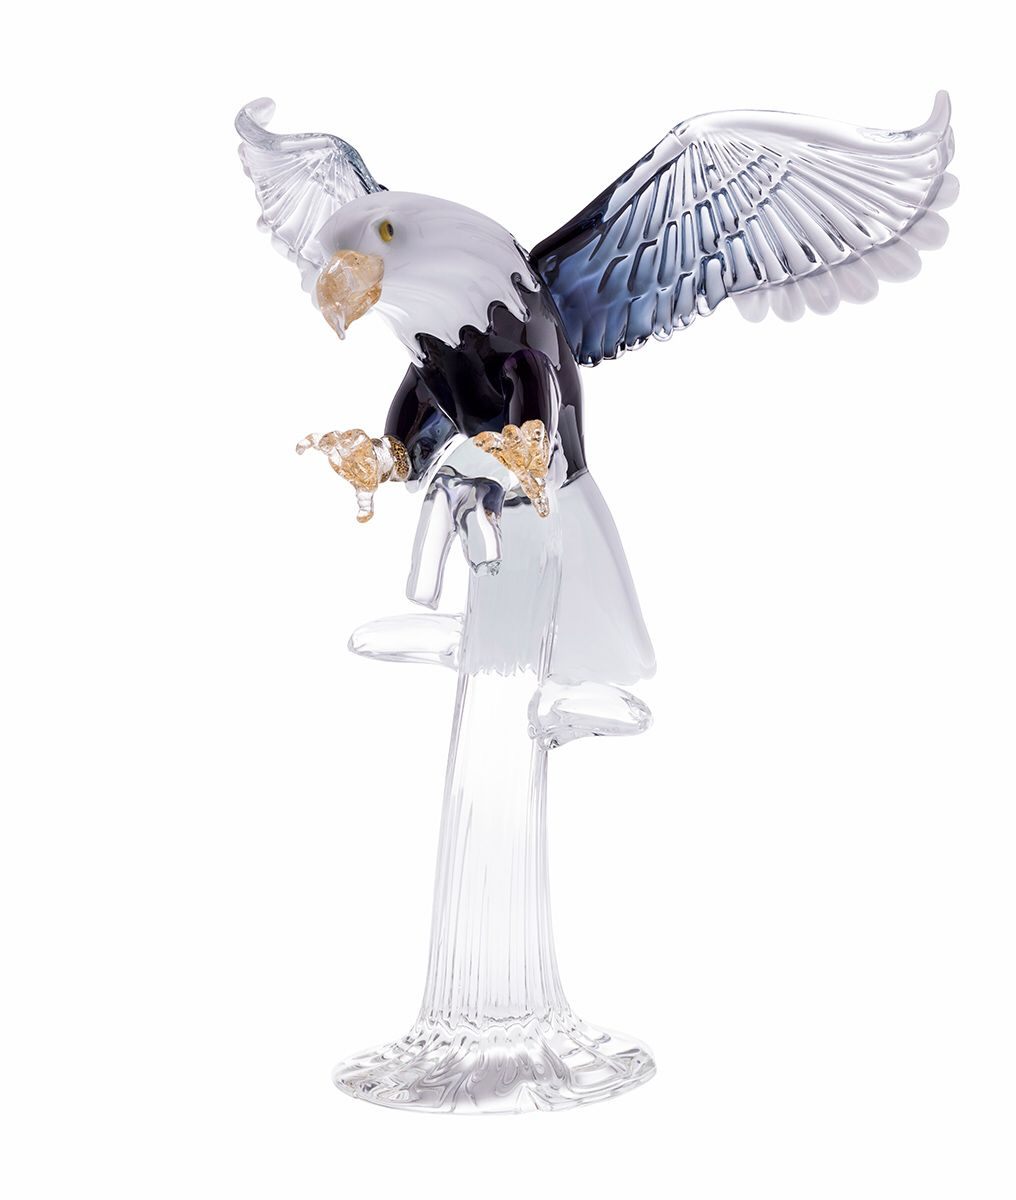 Murano glass (Venetian glass) eagle. It's a stunning piece to gift or for your home décor!